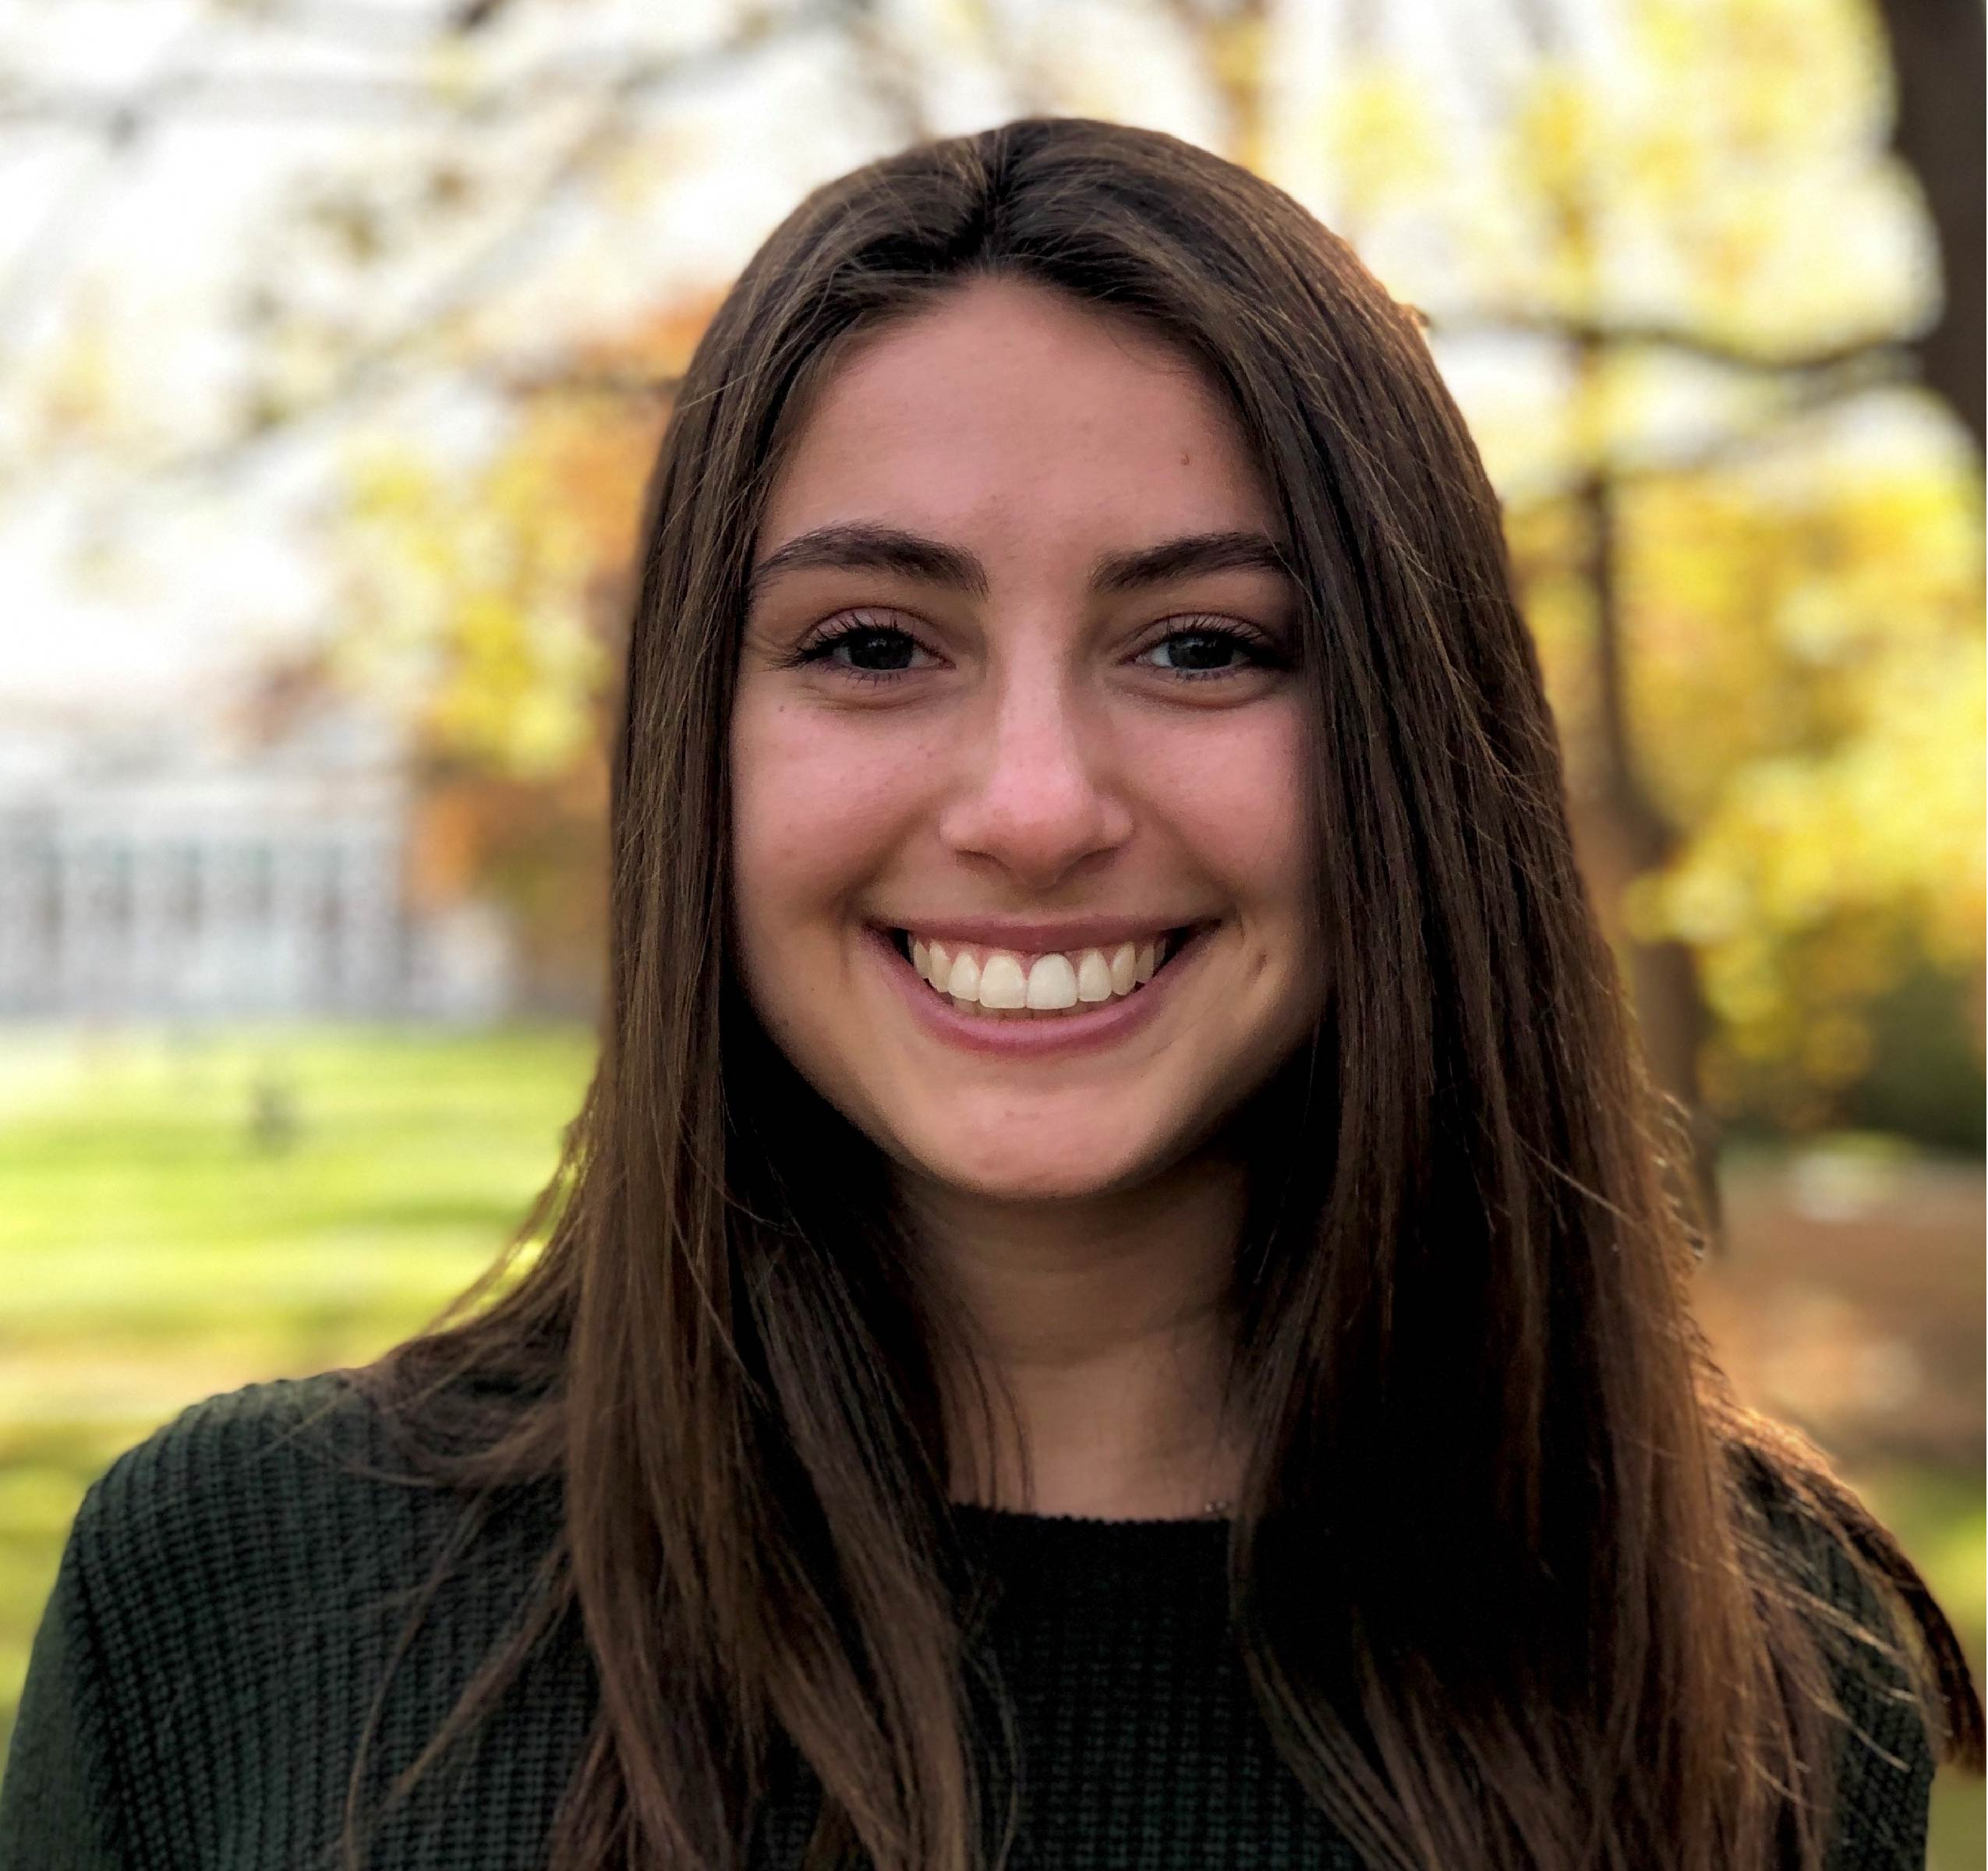 Elena Irvine is a rising sophomore at Vanderbilt University and is unsure of her major at this time, but her interests lie in many areas including Chemical and Biomolecular Engineering, Environmental Engineering, Human and Organizational Development, Business, and Medicine. Elena is passionate about helping and working with people and hopes to make an impact through her time in the Rafat Lab. Her main focus is visualizing the tumor vasculature. Specifically, Elena aims to determine the effects of radiation therapy on High Endothelial Venules in the presence and absence of CD8+T cells. Outside of the lab she enjoys spending time in nature, listening to music, trying new foods, and exercising.